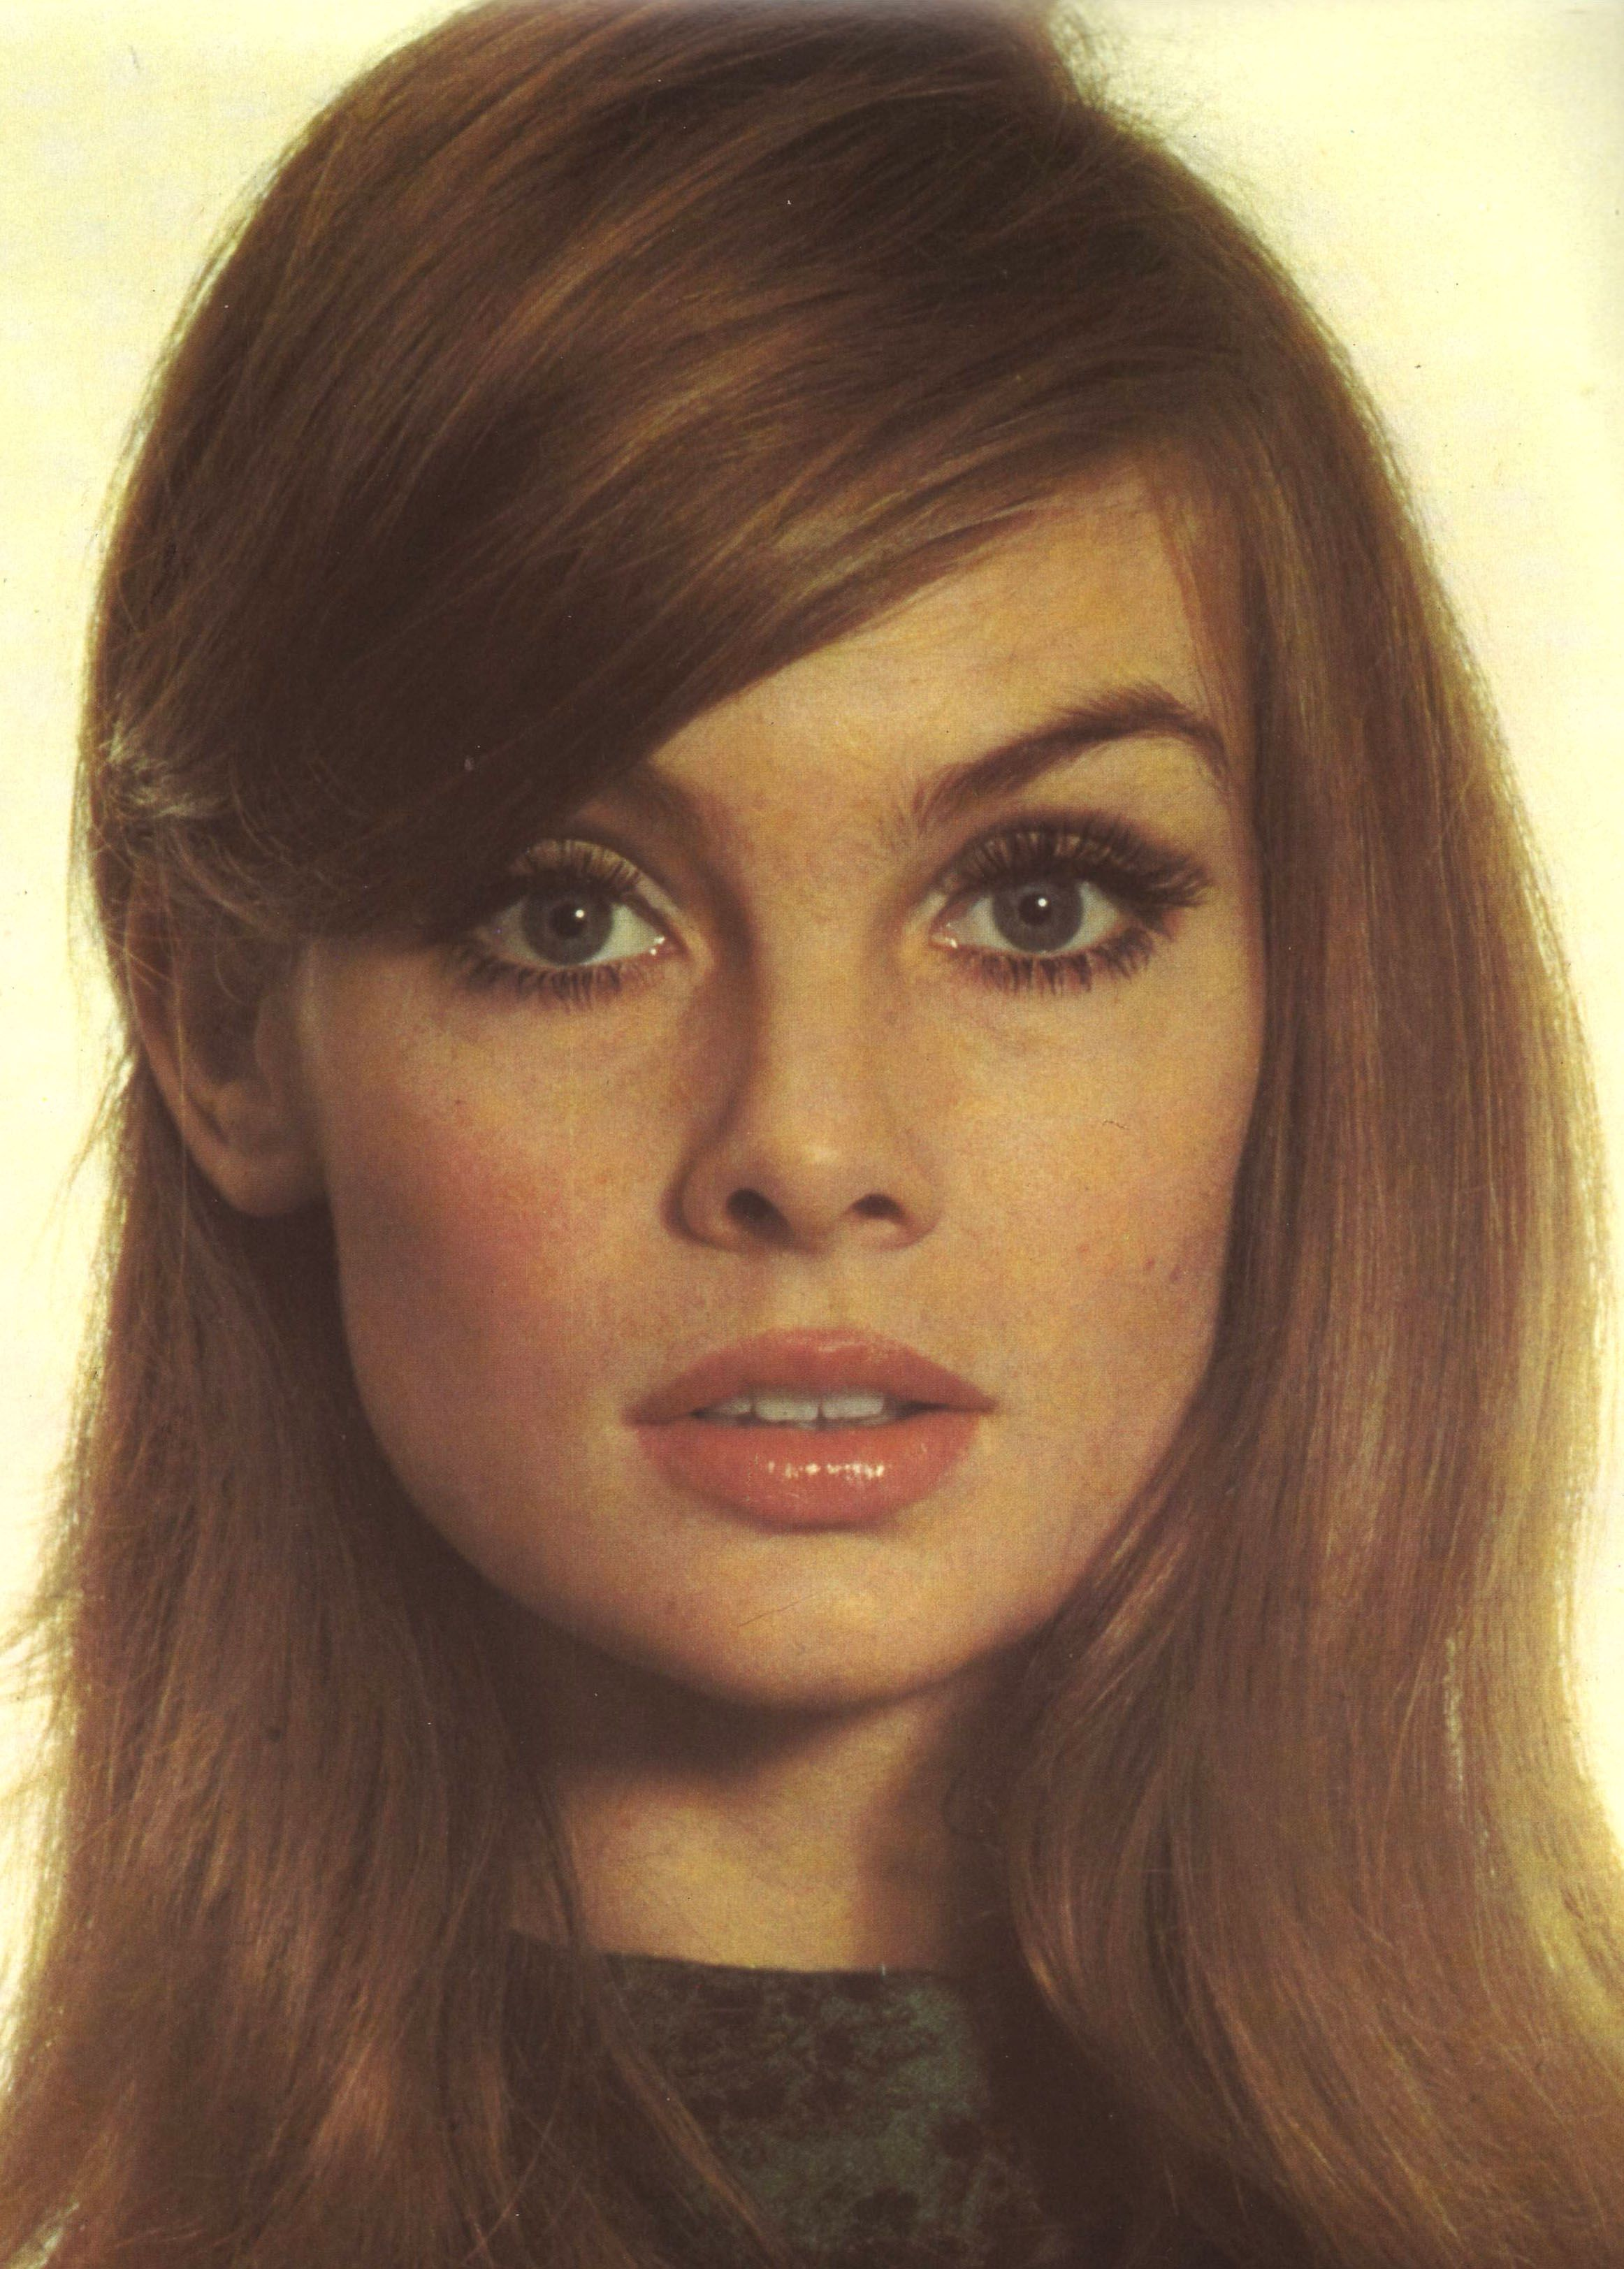 Coiffure 1960 Pin By Annieodyne On The Face Jean Shrimpton Pinterest